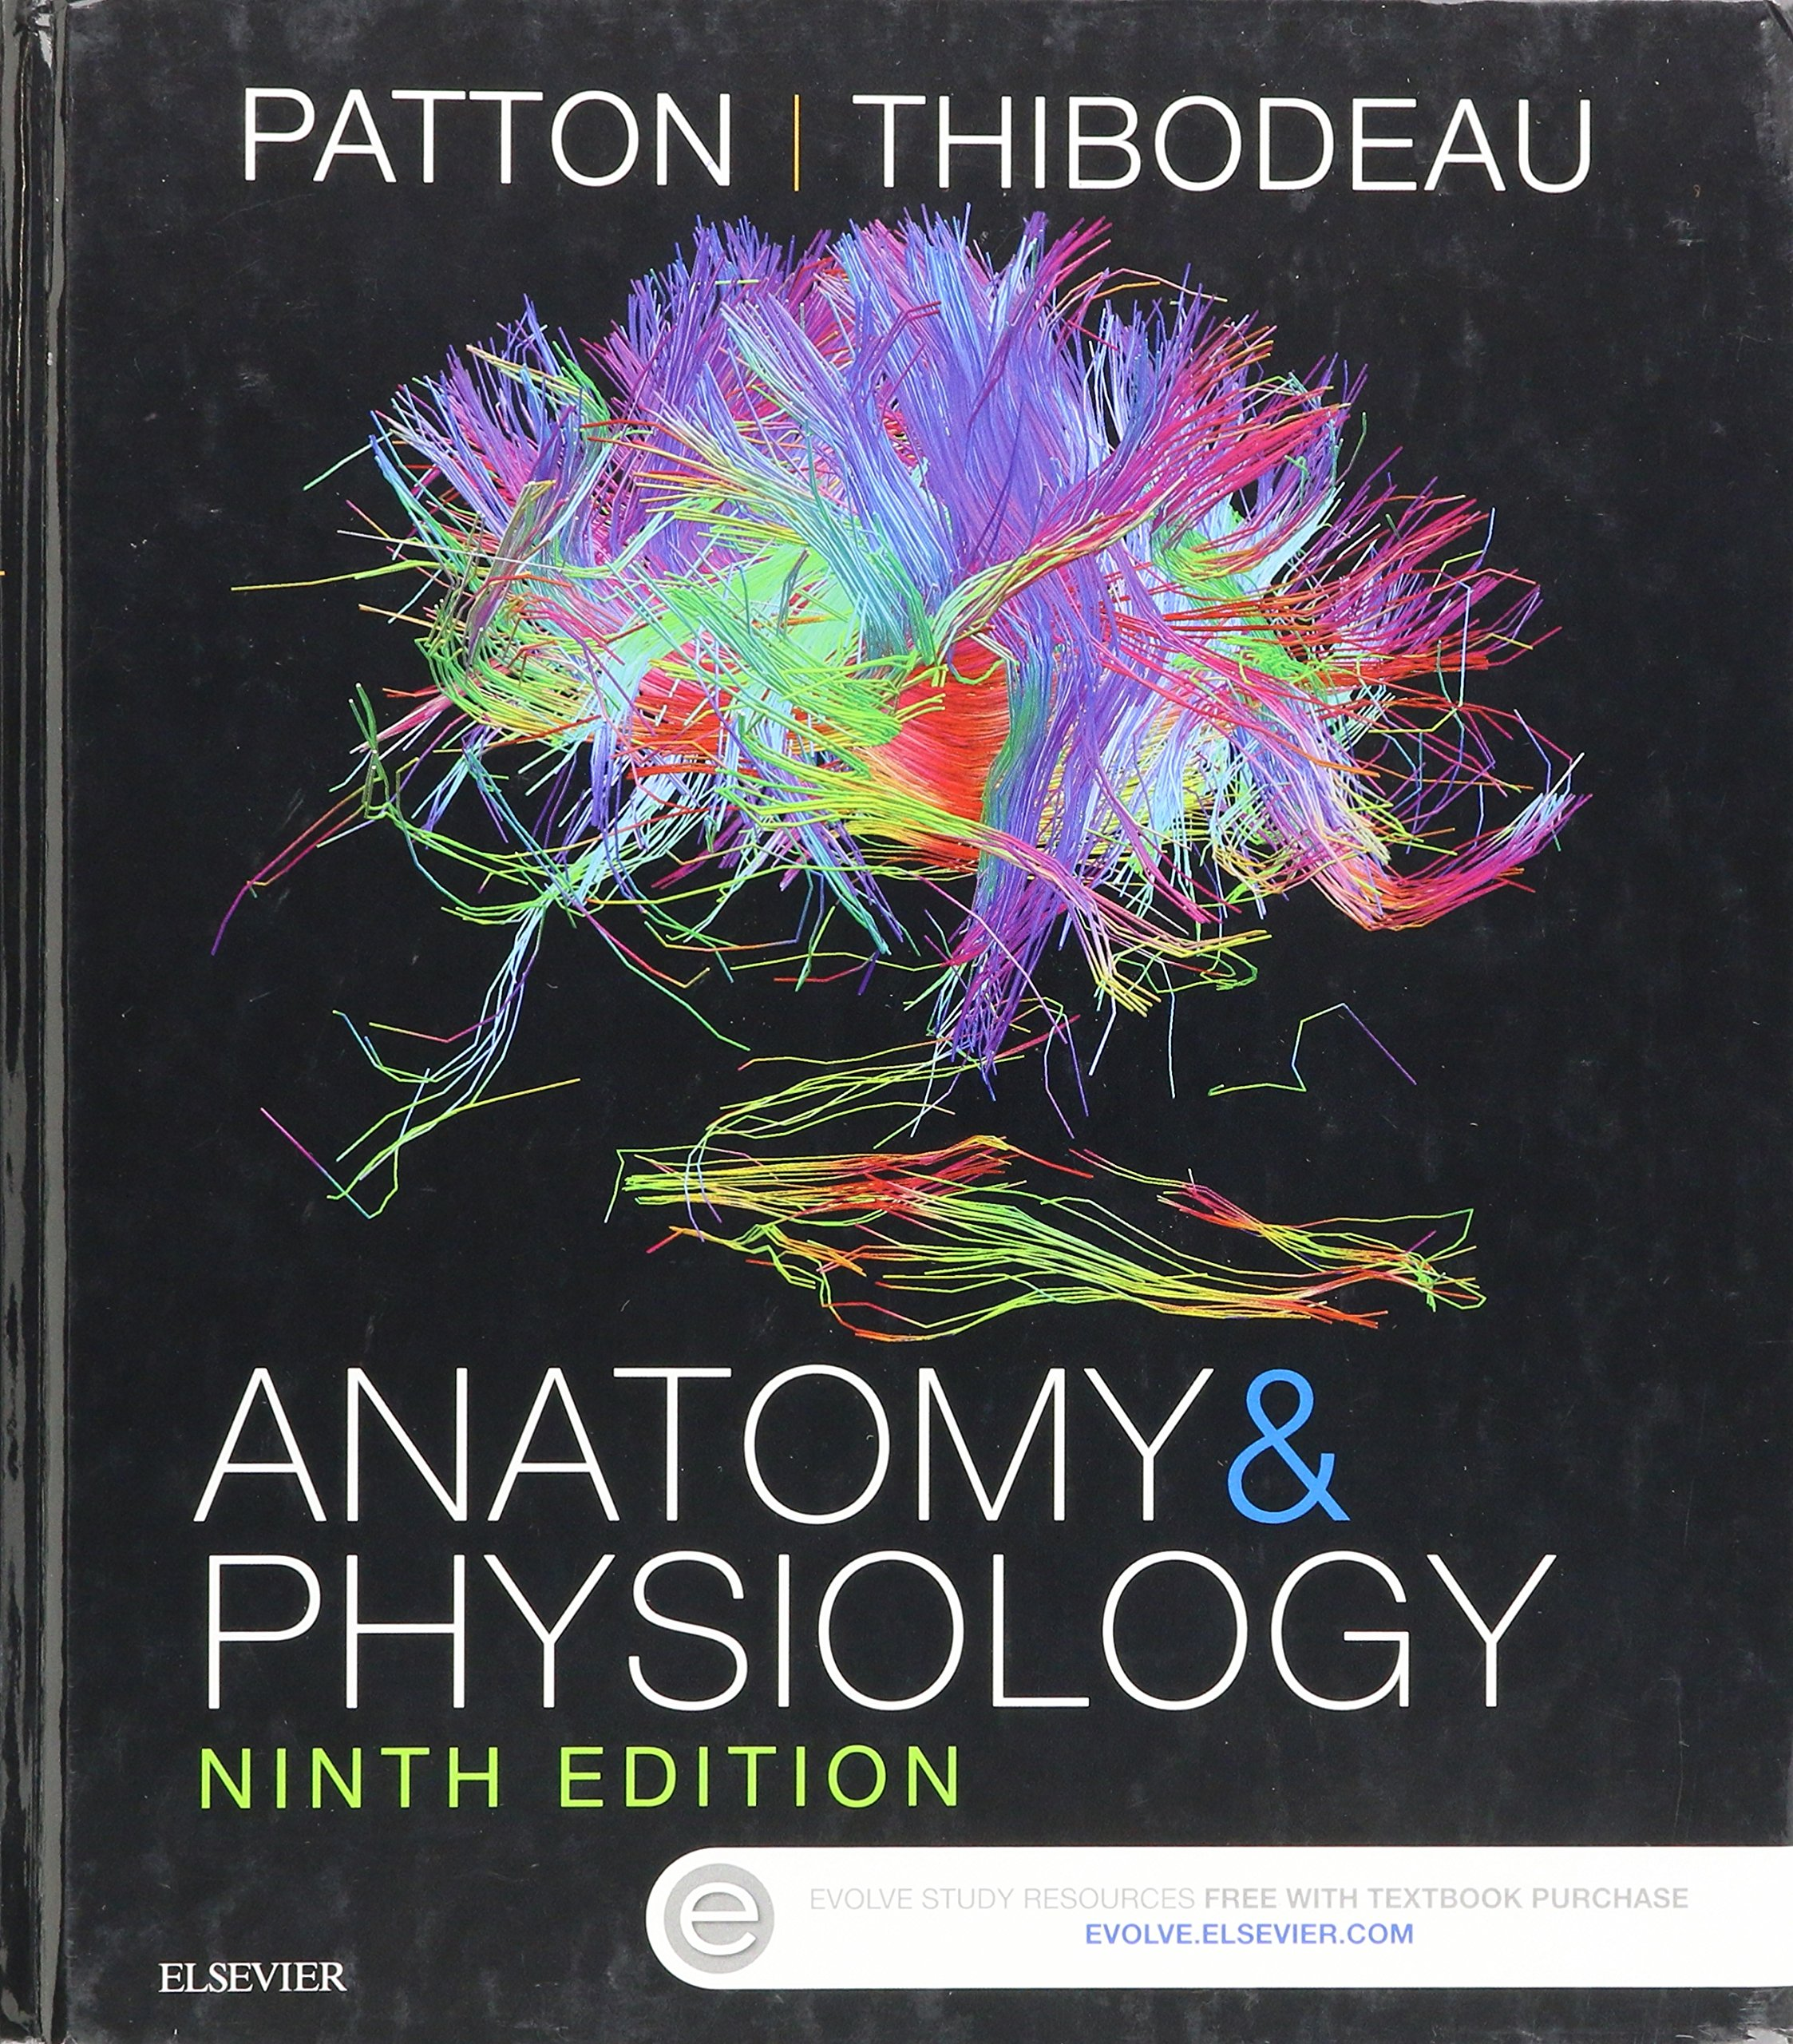 Anatomy and Physiology: Patton: 9780323341394: Amazon.com: Books